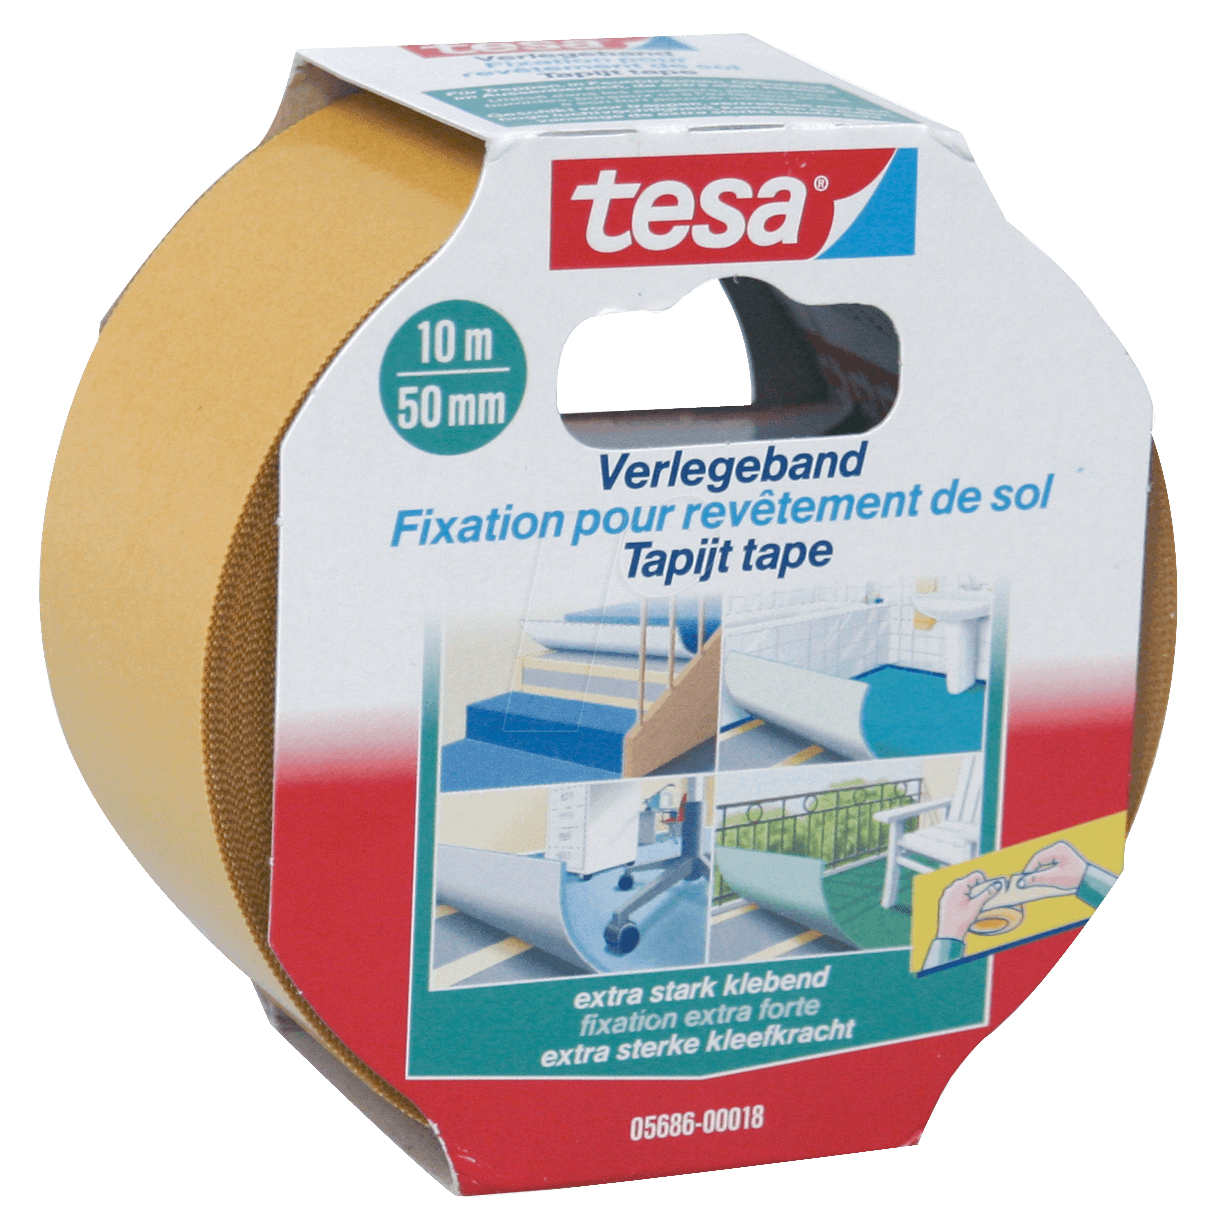 tesa 05686 tesa laying tape extra strong 10 m x 50 mm at reichelt elektronik. Black Bedroom Furniture Sets. Home Design Ideas